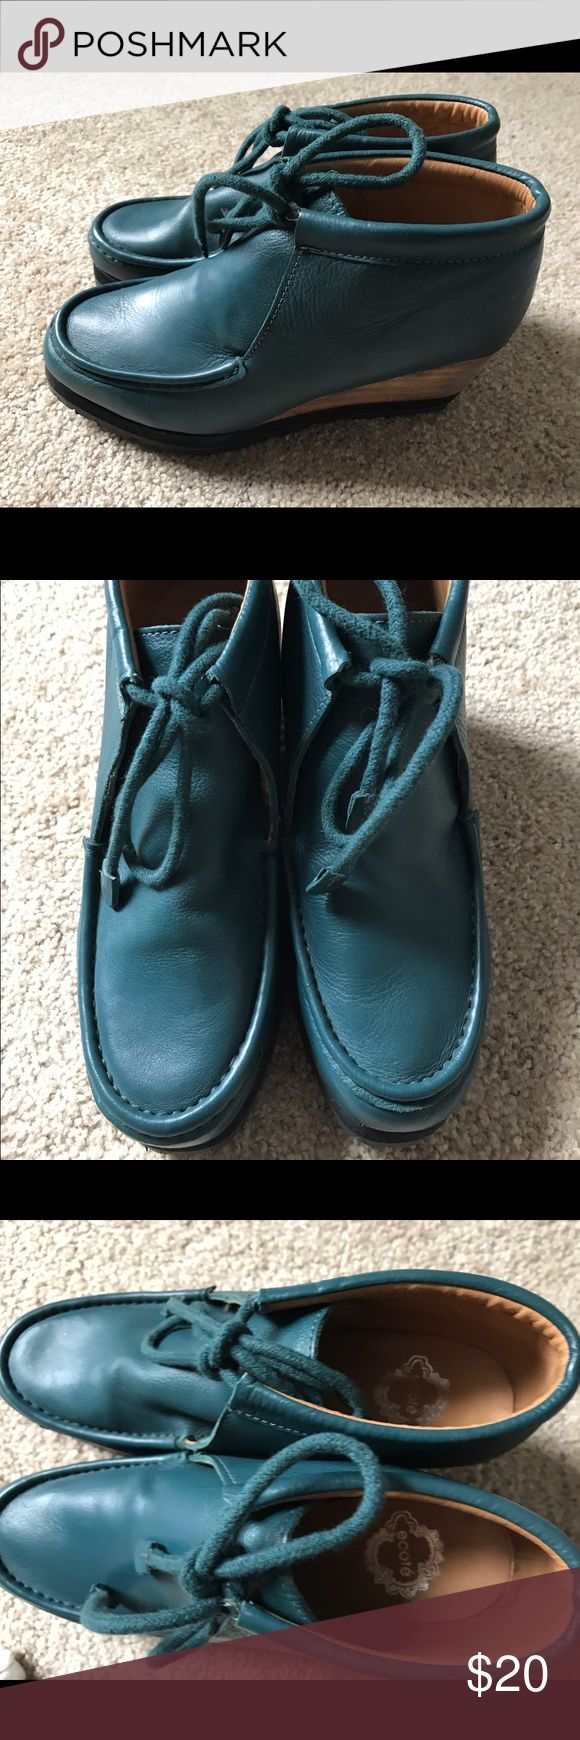 UO Ecote Teal Wedge Leather Ankle Bootie Brand new, never worn, Ecote brand teal leather bootie wedges from Urban Outfitters, size 7.5, moccasin/chukka style lacing, originally bought for $70. Ship from a clean smoke free home and feel free to message me with any questions Ecote Shoes Ankle Boots & Booties